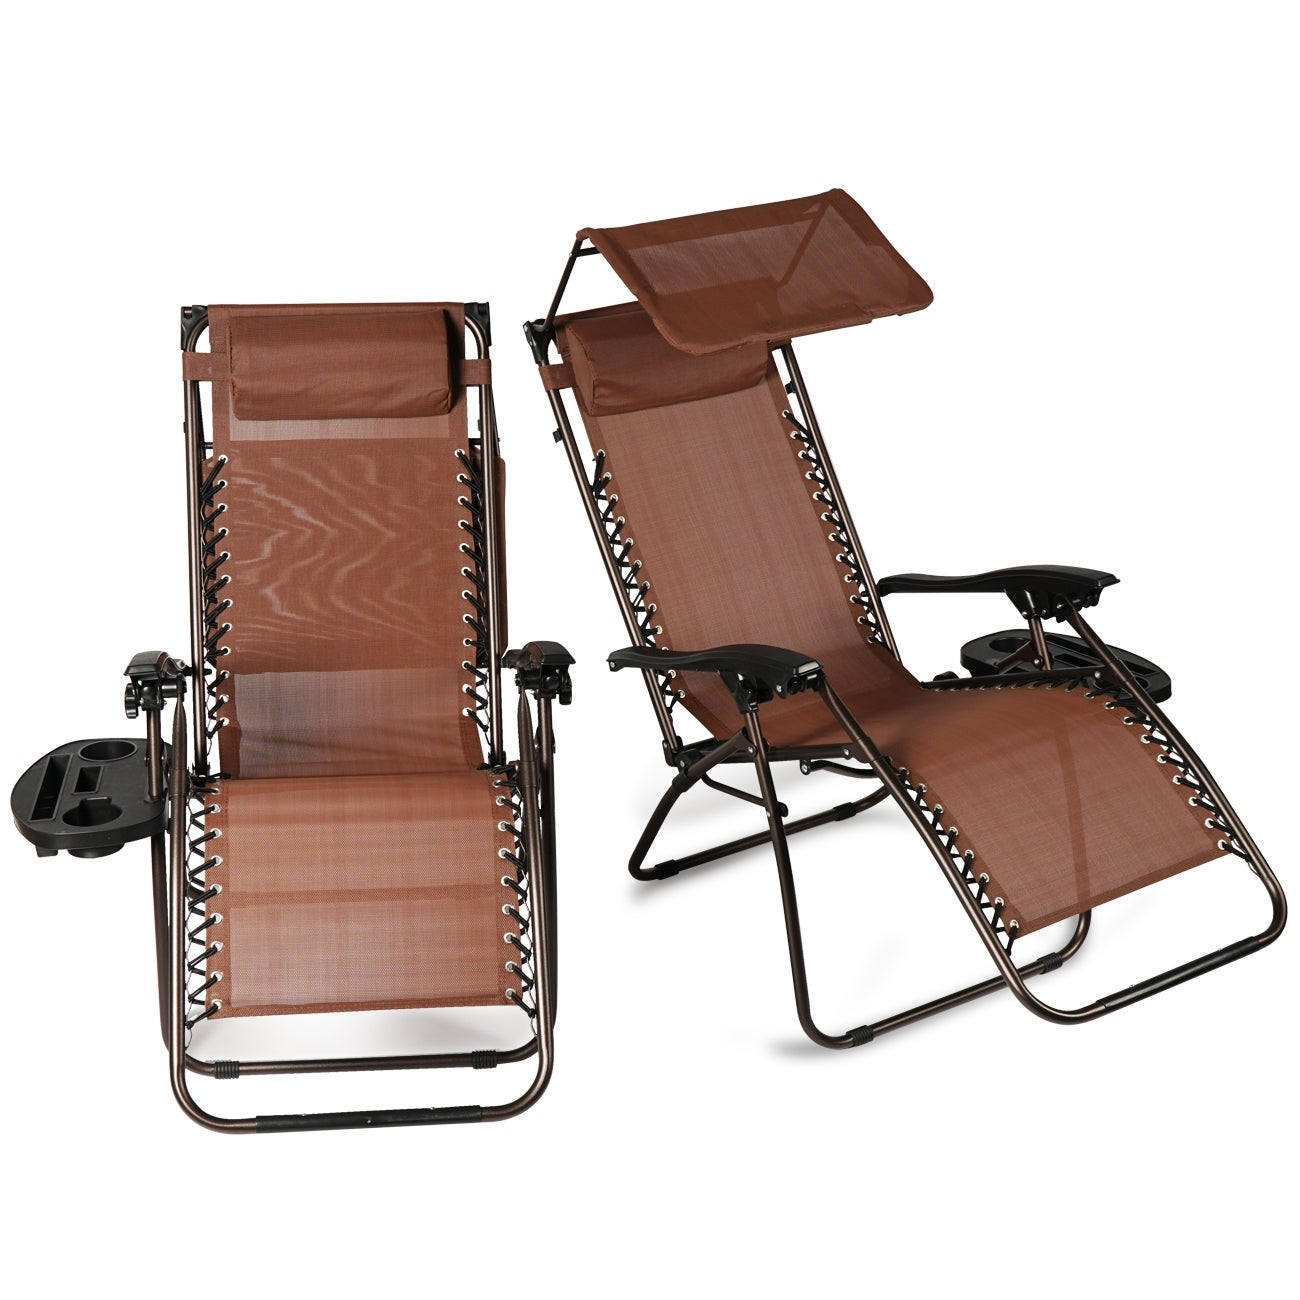 Belleze 2 Pack Zero Gravity Chairs Canopy Shade Headrest Pillows Recliner With Tray Brown